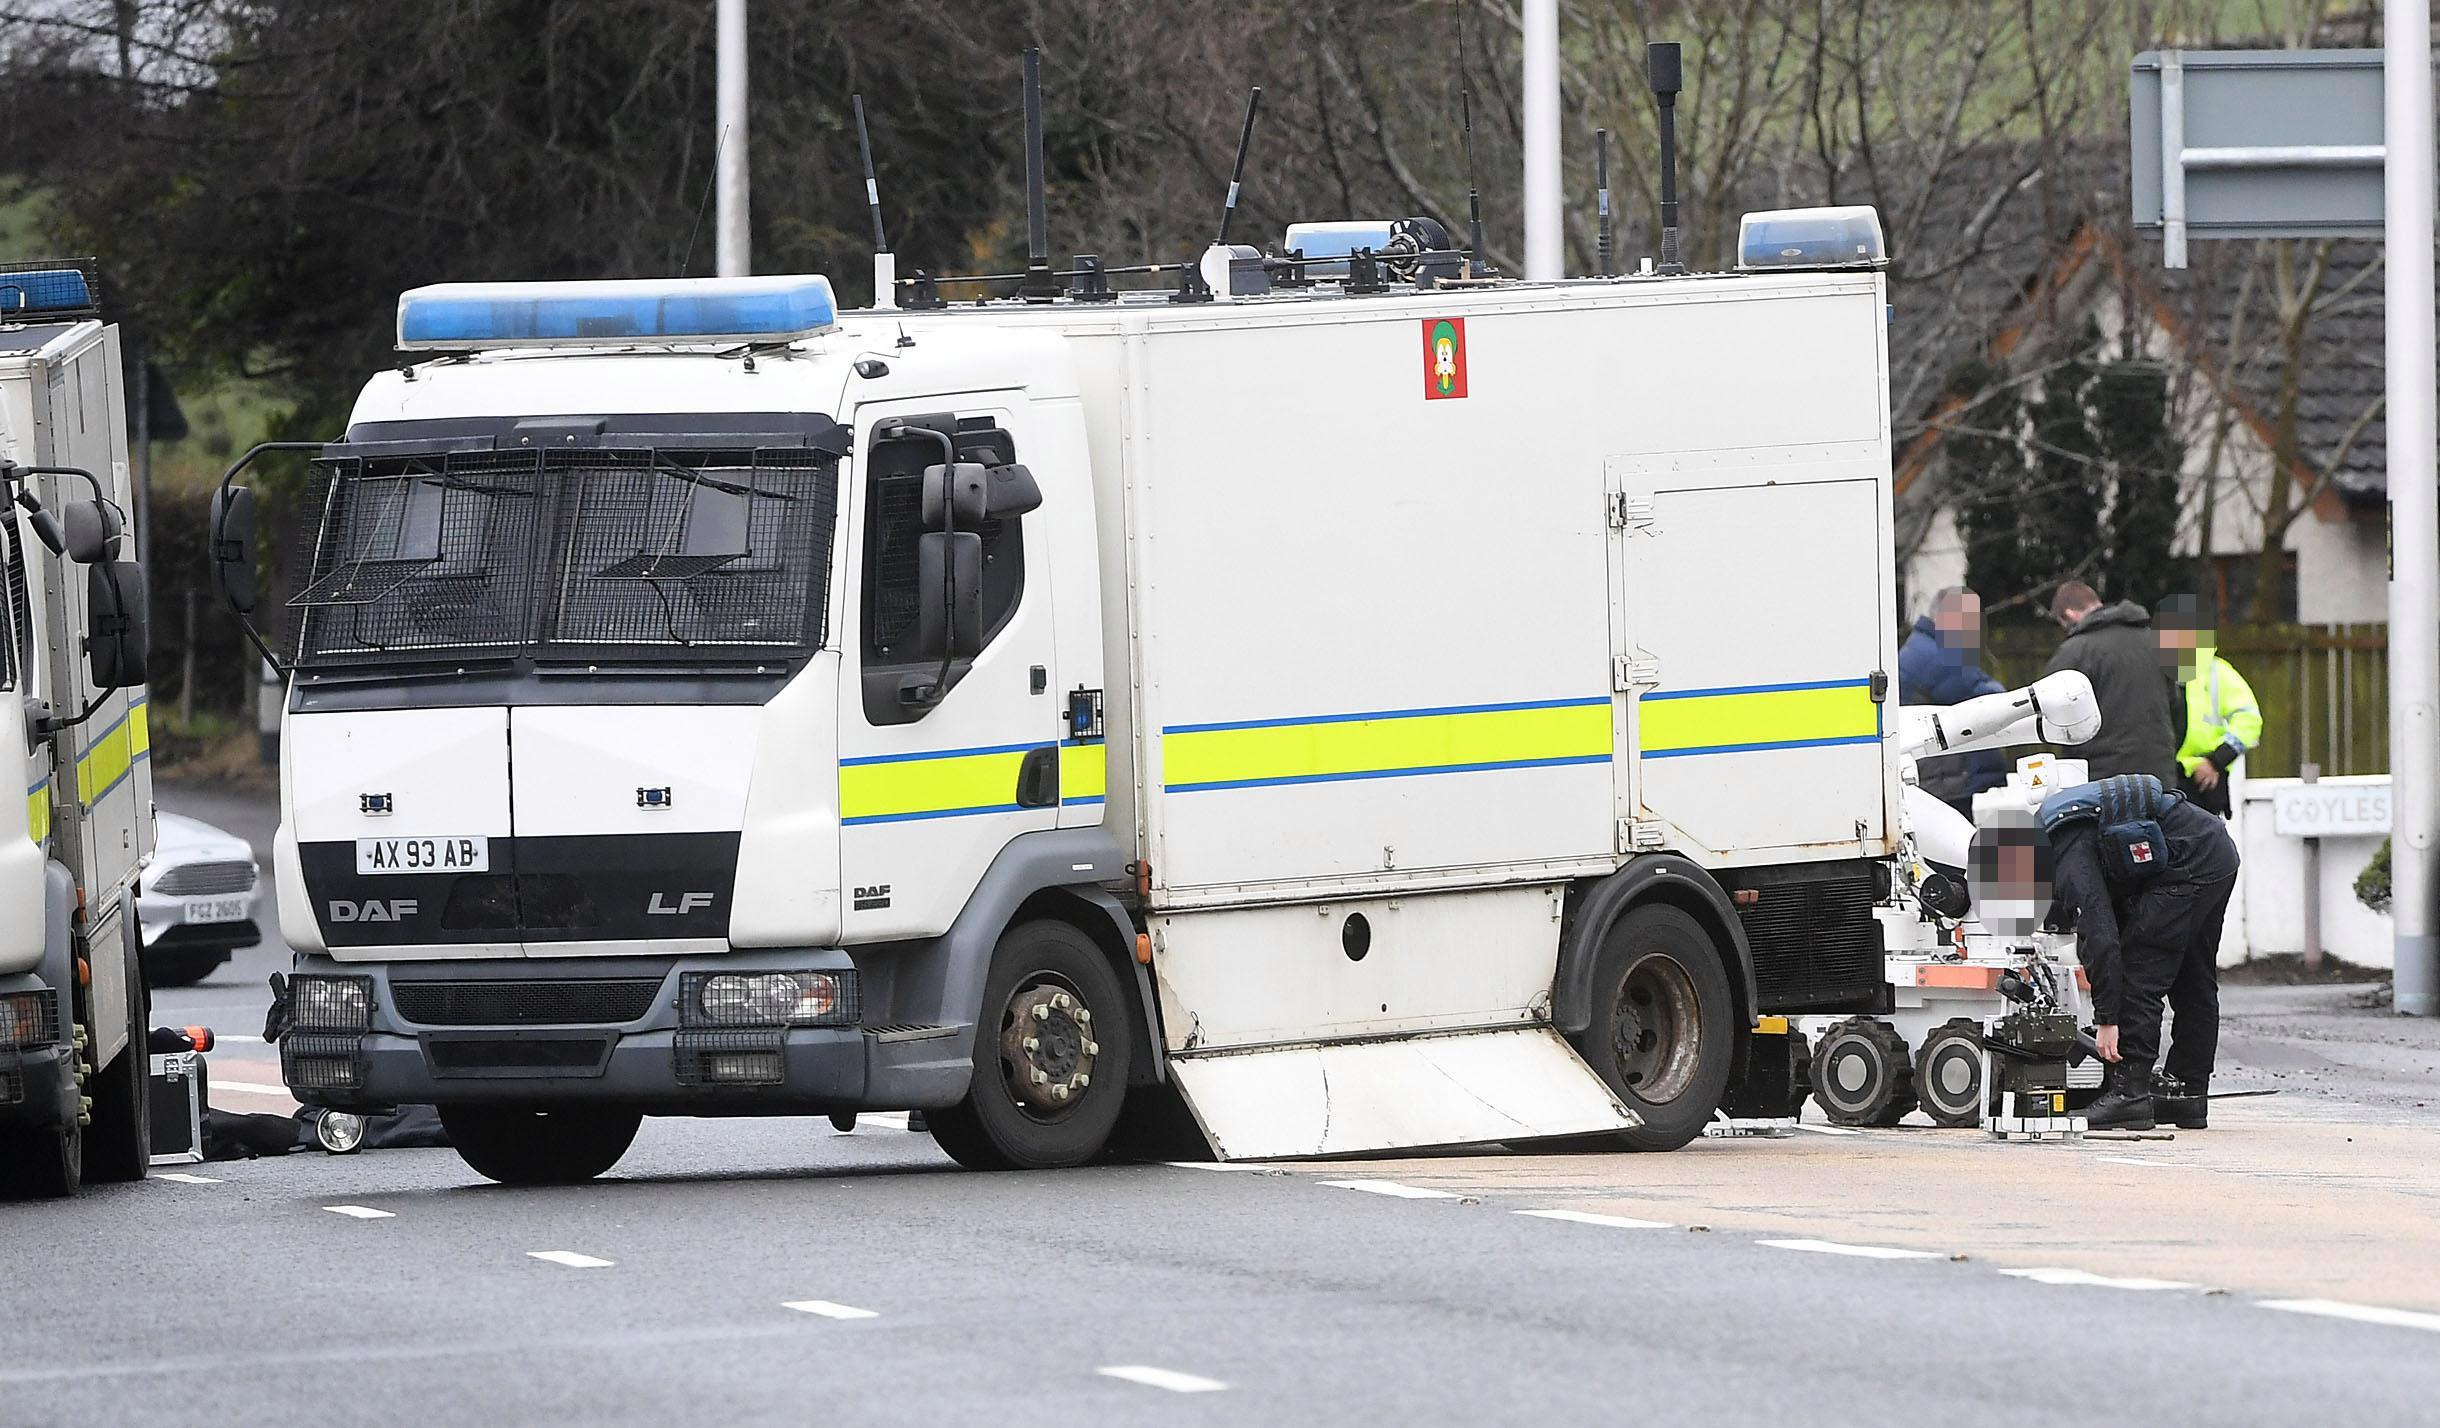 Police car 'explodes' sparking fears of 'booby trap bomb' in Northern Ireland